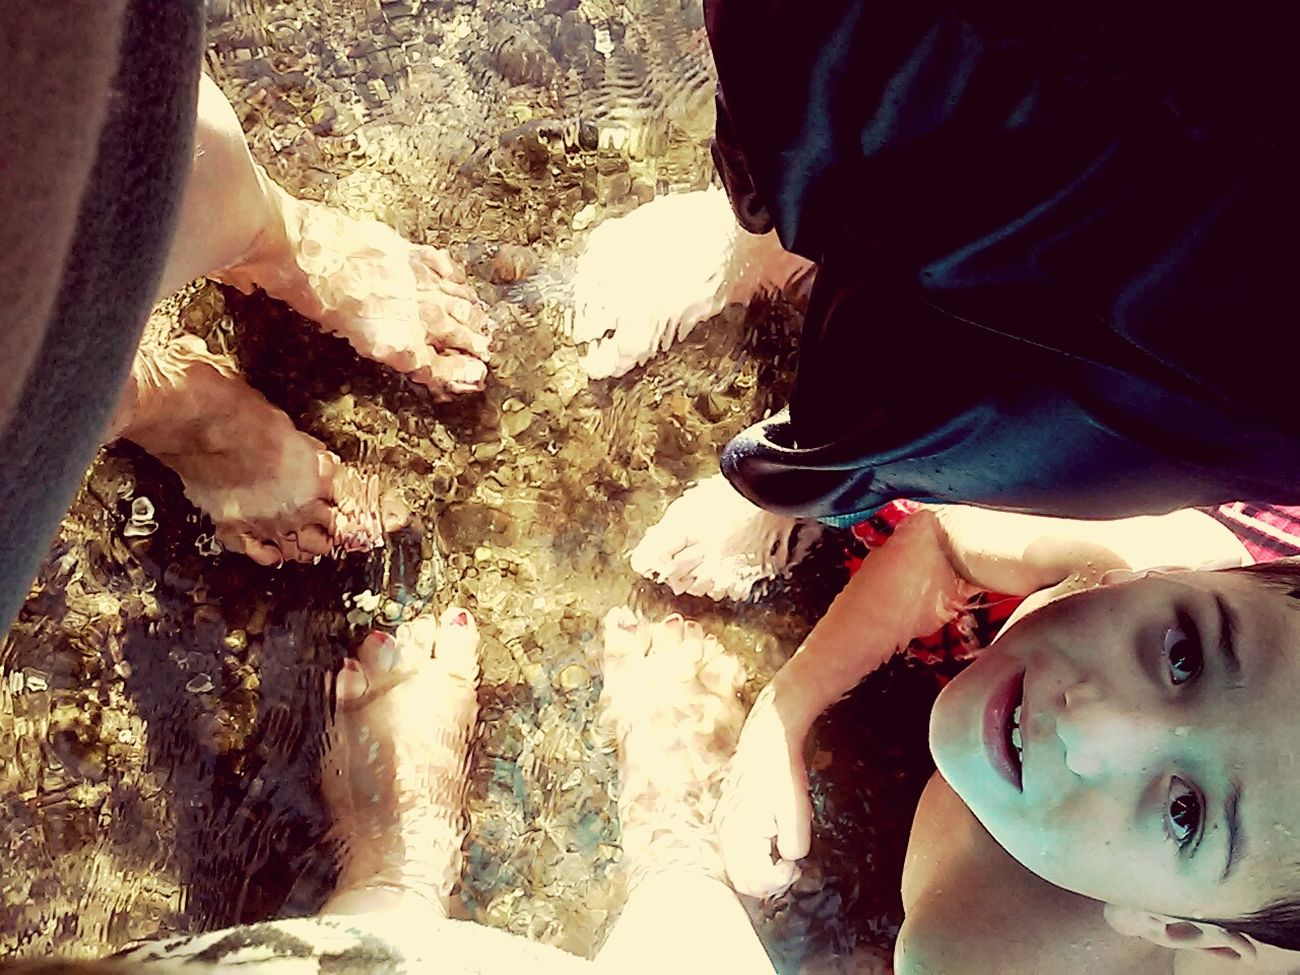 Barefoot Three Generations, my mother, myself and two nephews. Taken in this beautiful, warm and clear water. Mondayfunday Statepark Dayoffun Swimming Família Mom Nephews Clearwaters  Sunnyday